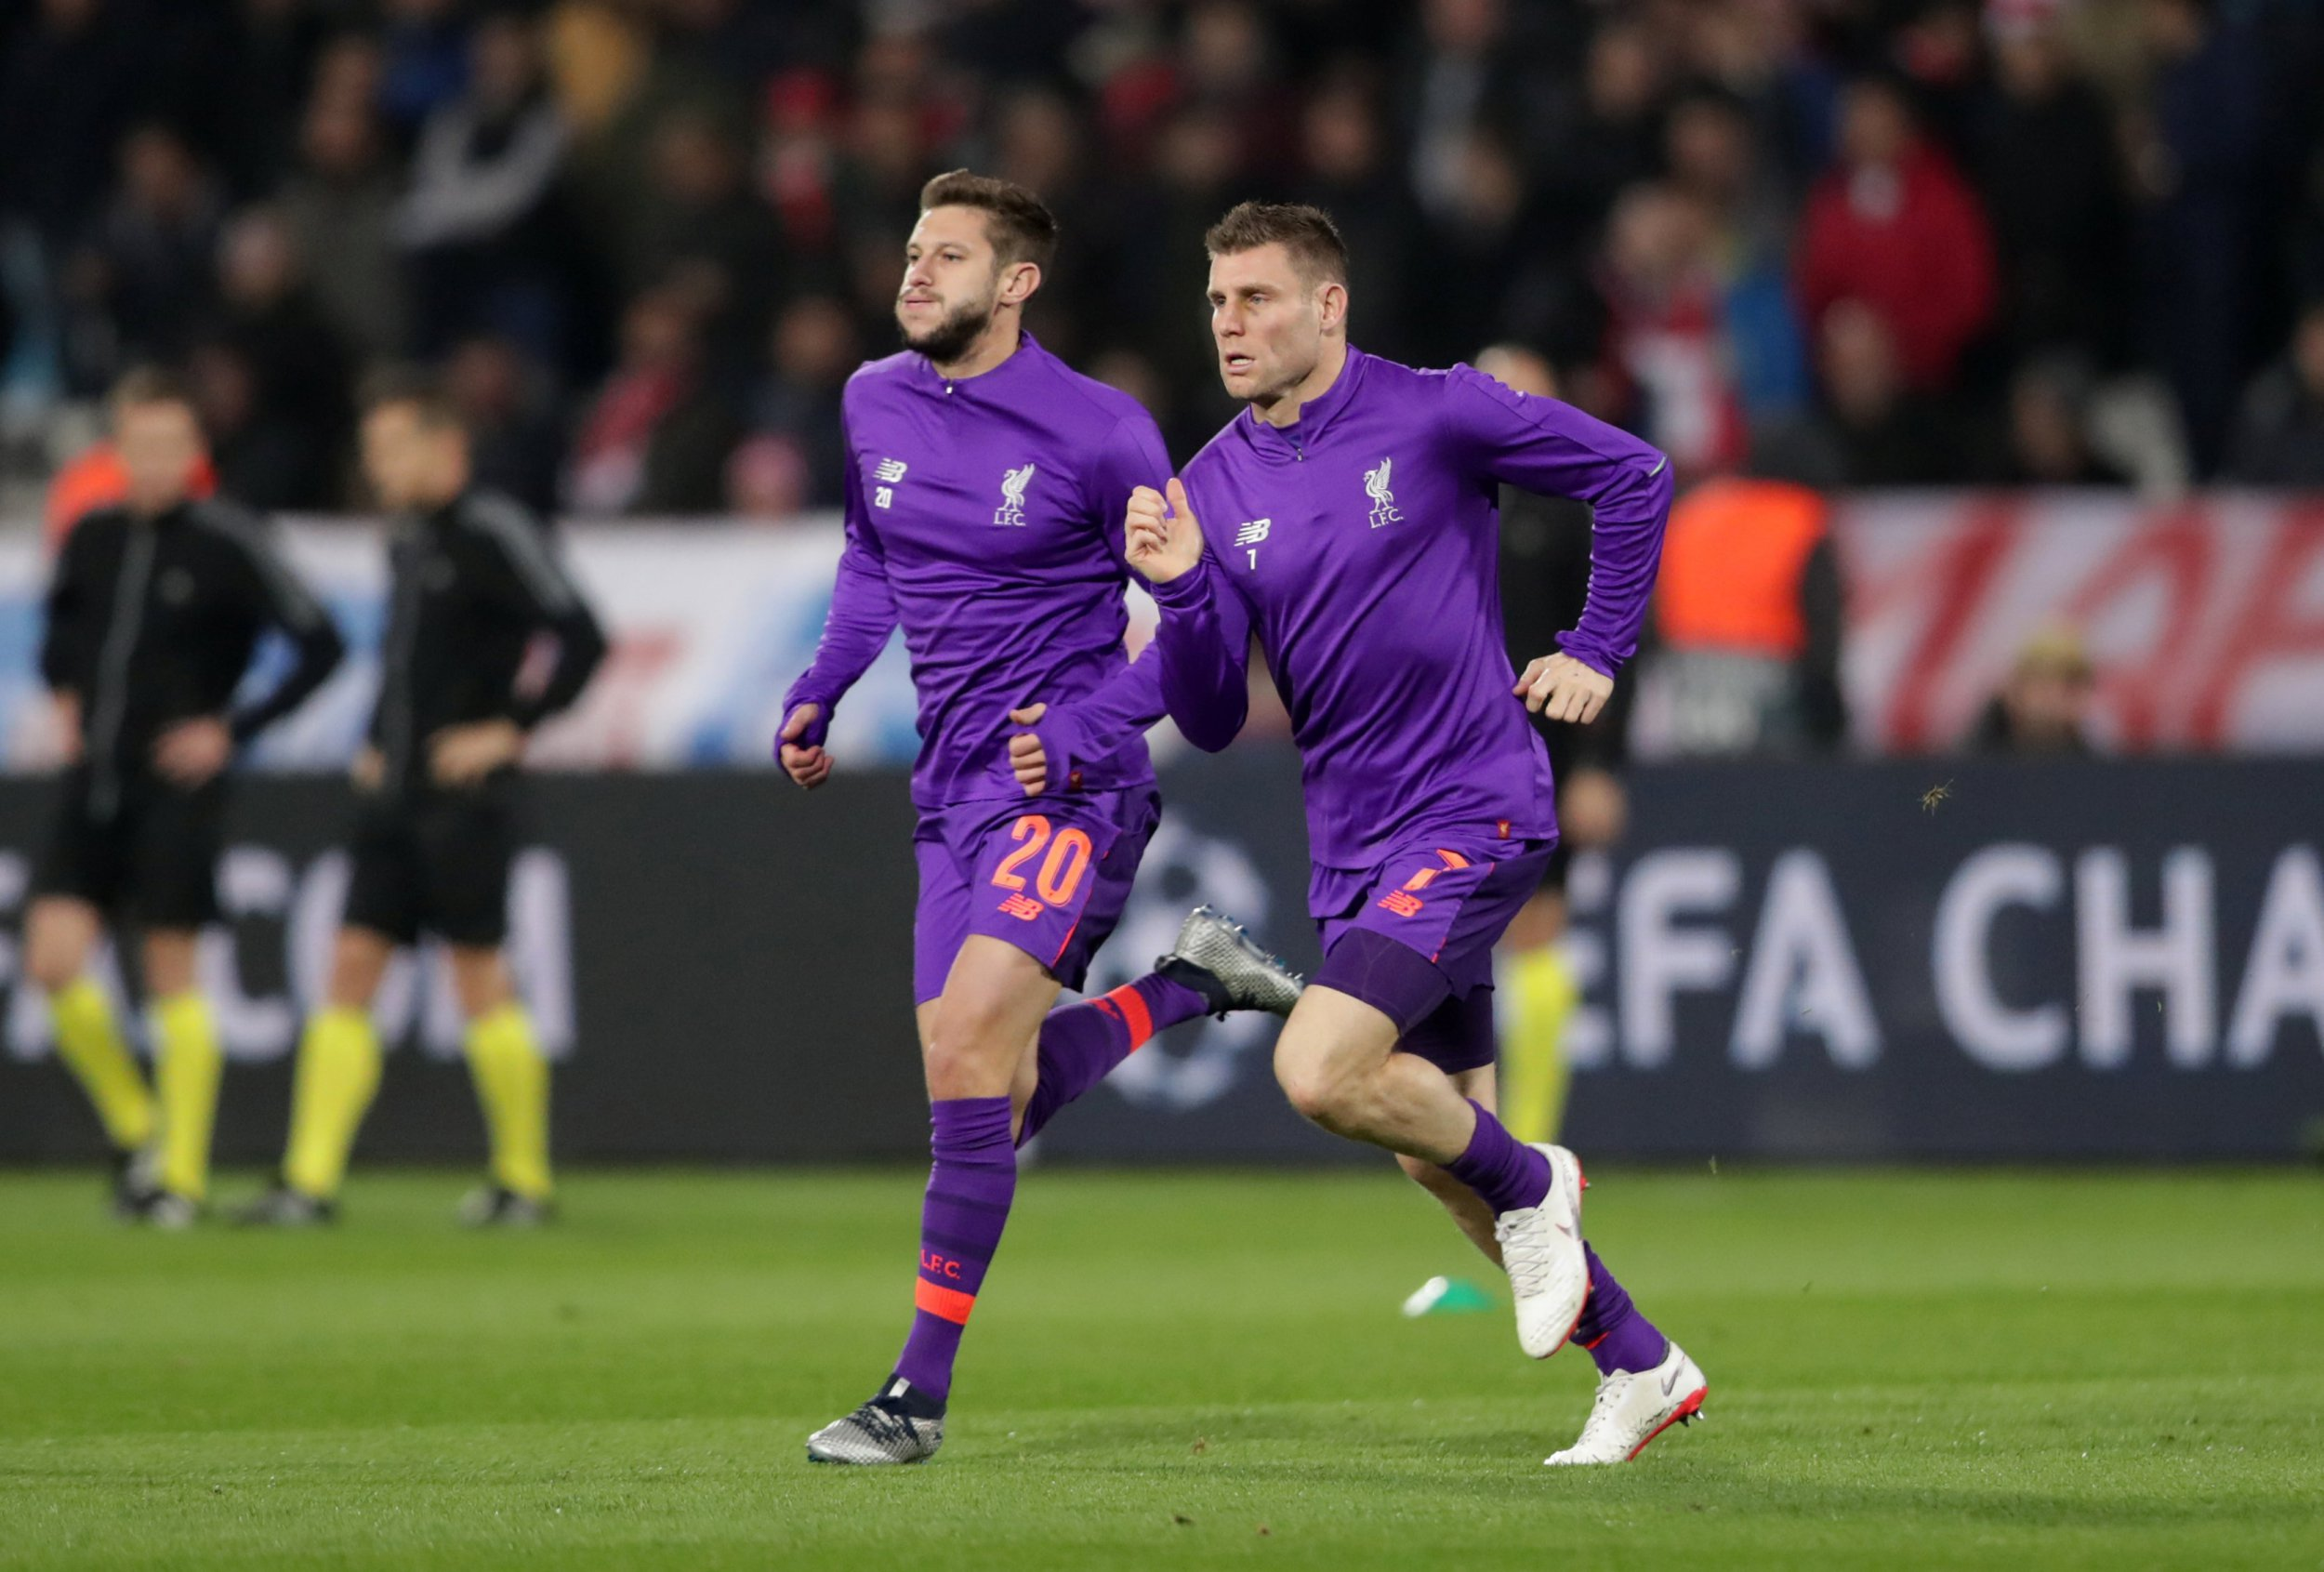 Soccer Football - Champions League - Group Stage - Group C - Crvena Zvezda v Liverpool - Rajko Mitic Stadium, Belgrade, Serbia - November 6, 2018 Liverpool's Adam Lallana and James Milner during the warm up before the match REUTERS/Marko Djurica